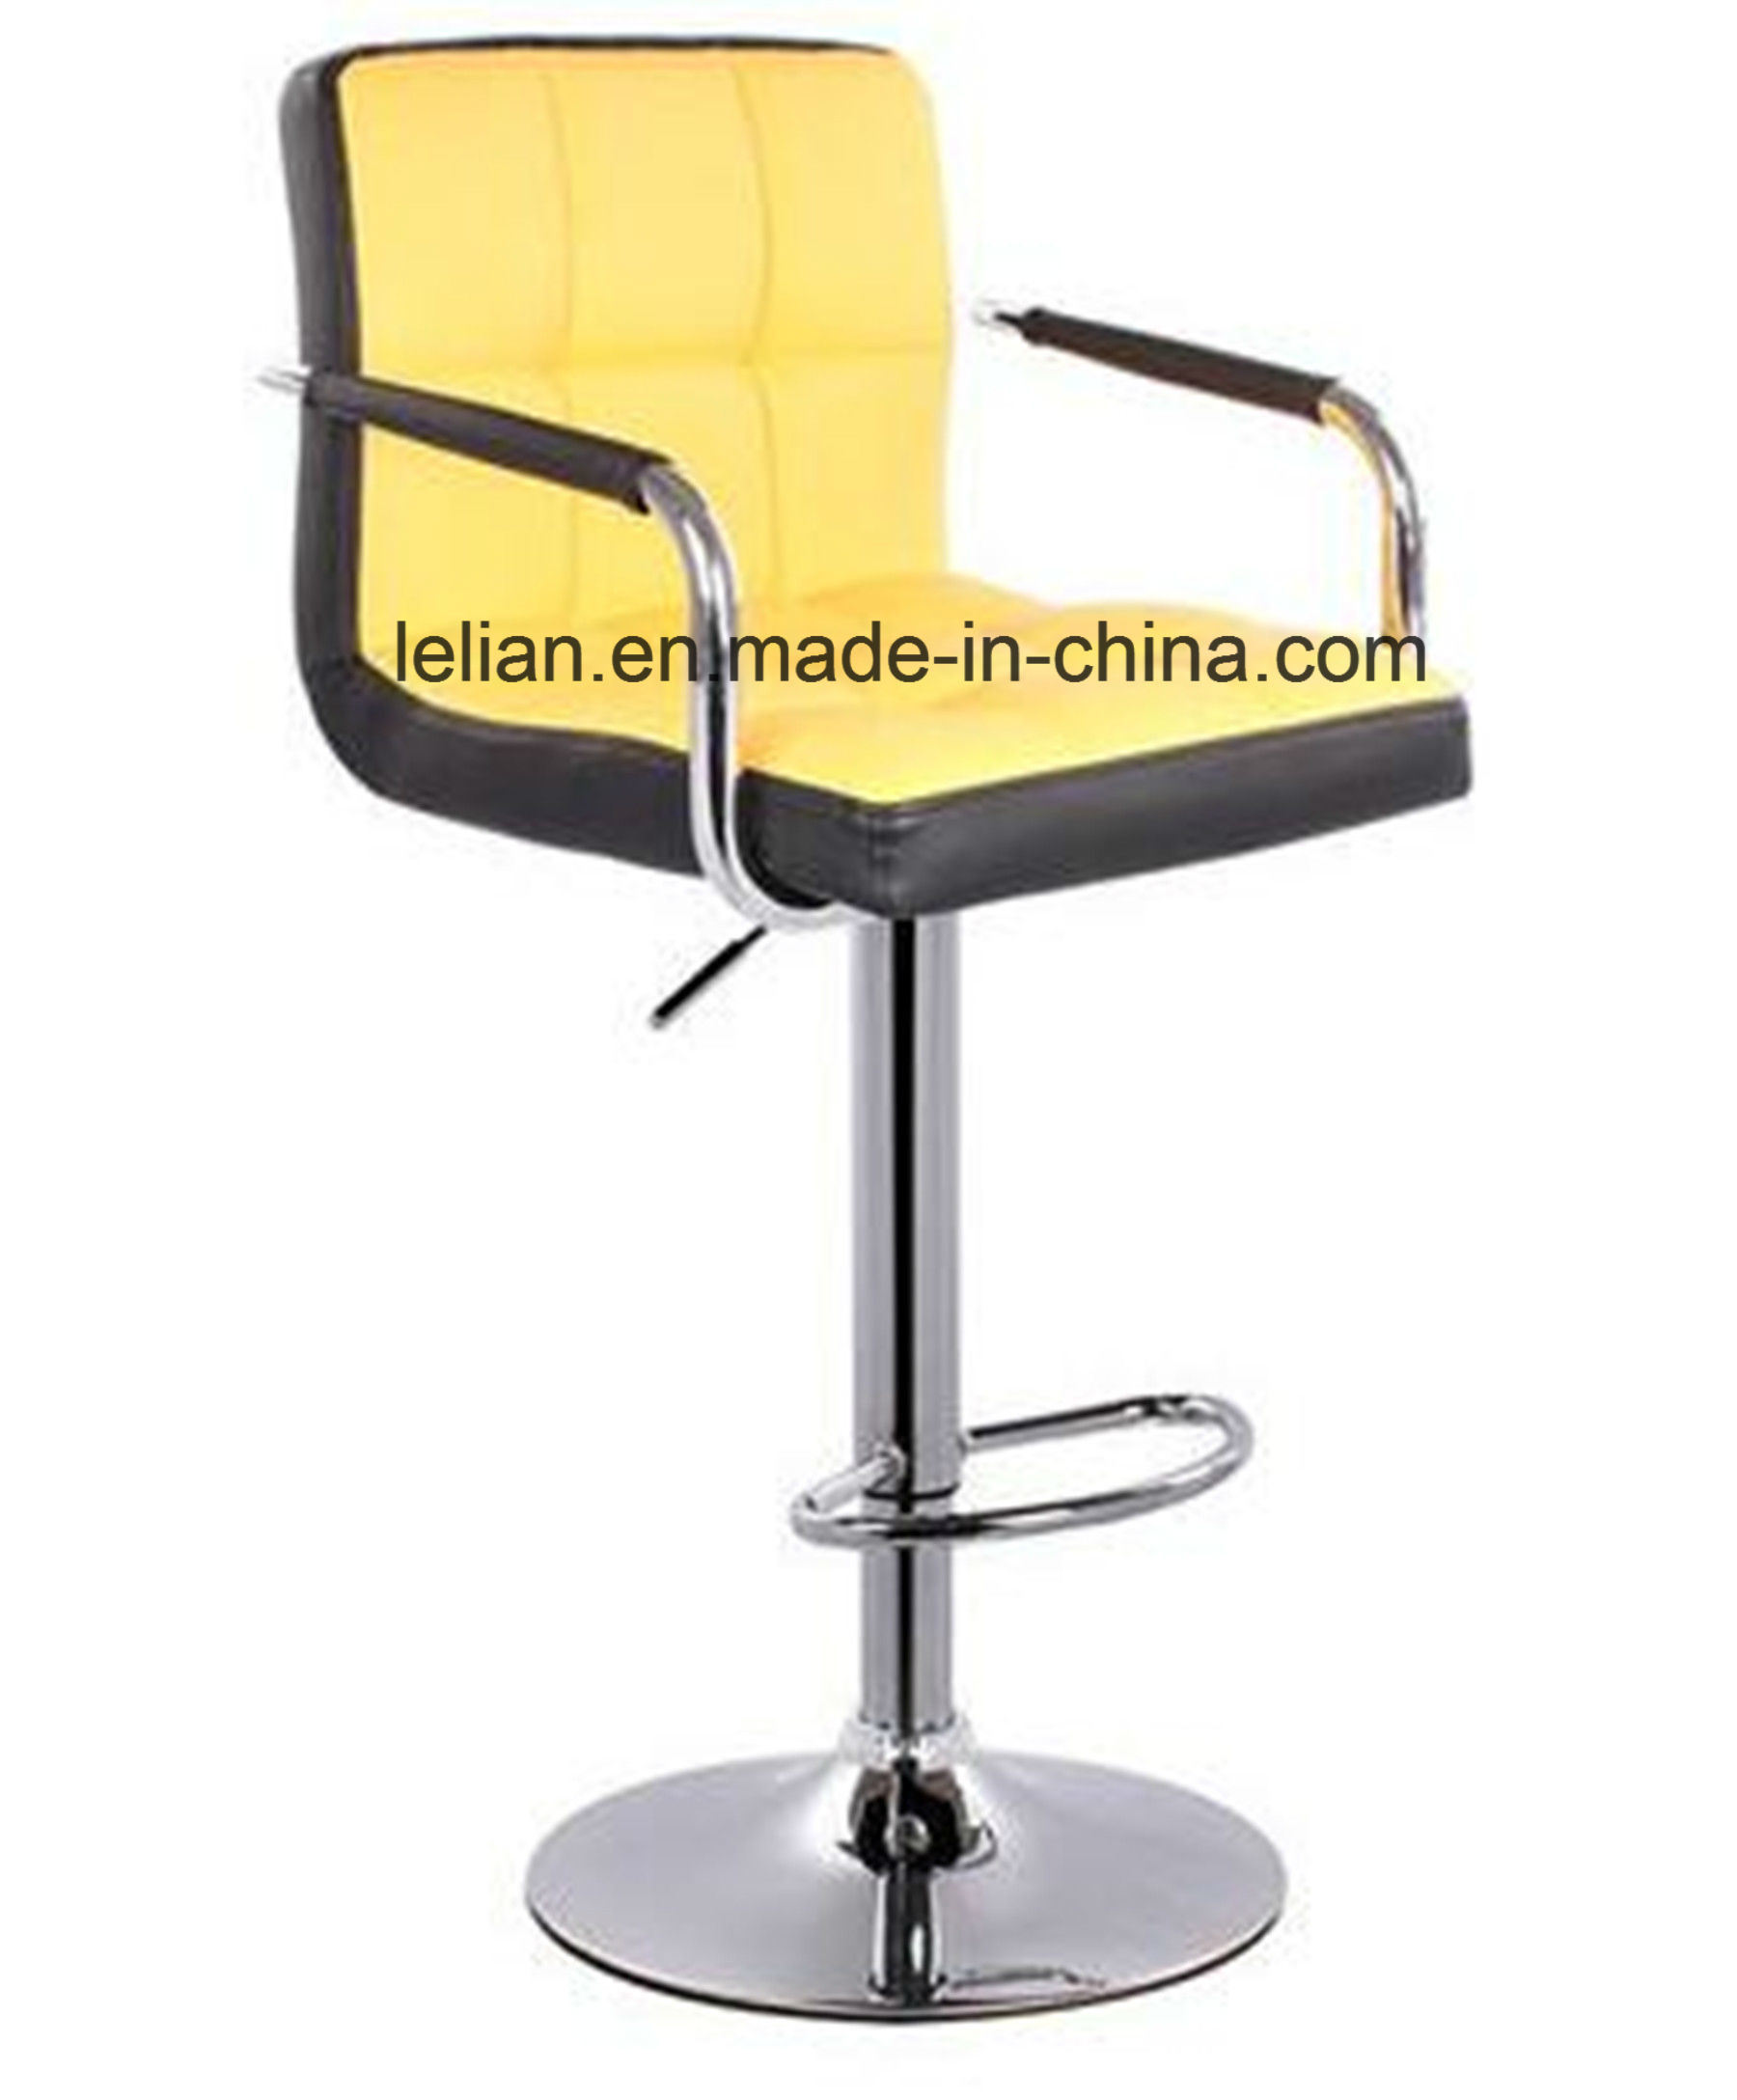 Office Ajustable Swivel PU Chair with High Density Sponge Inside (LL-BC041)